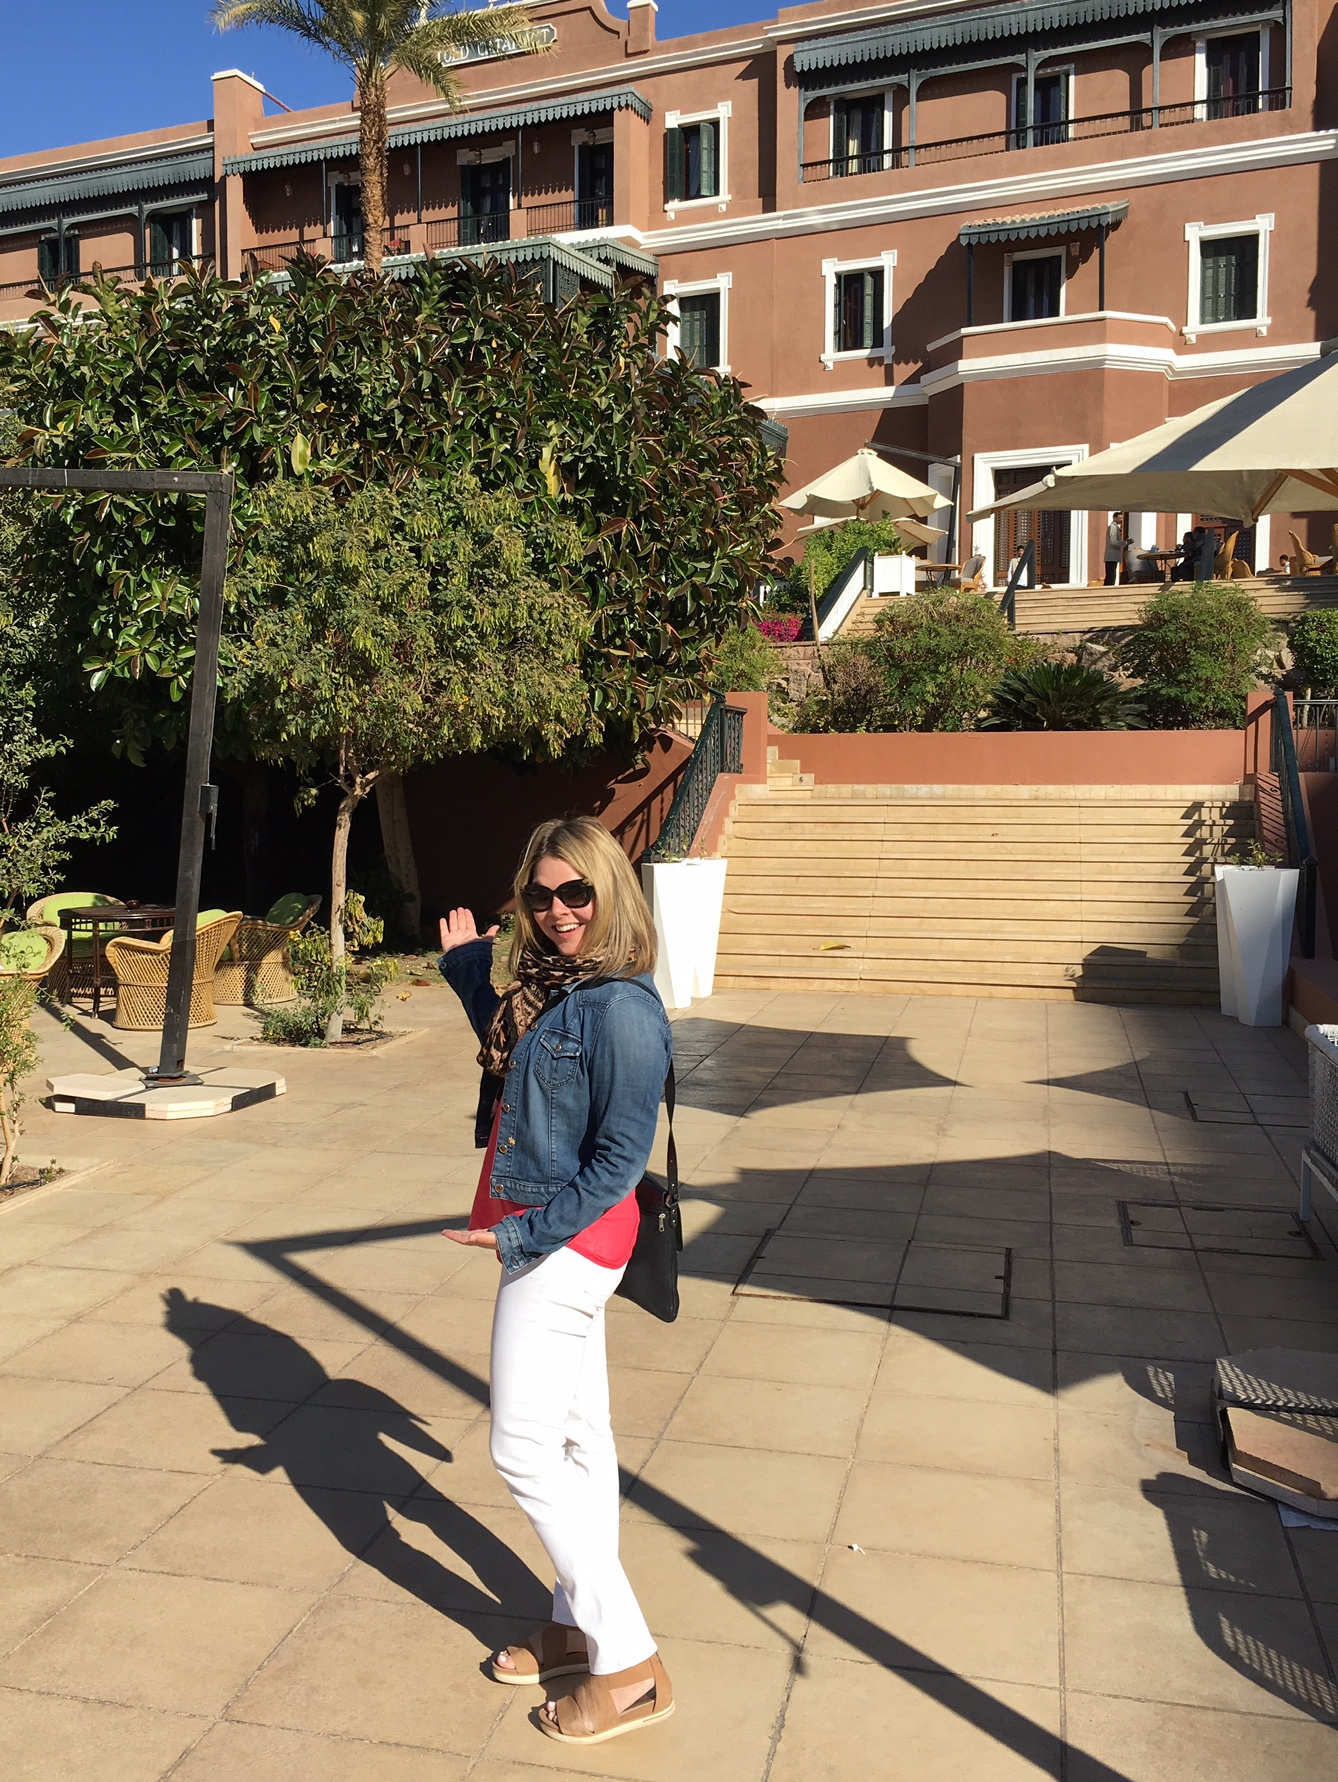 At the Sofitel Legend Old Cataract hotel in Aswan